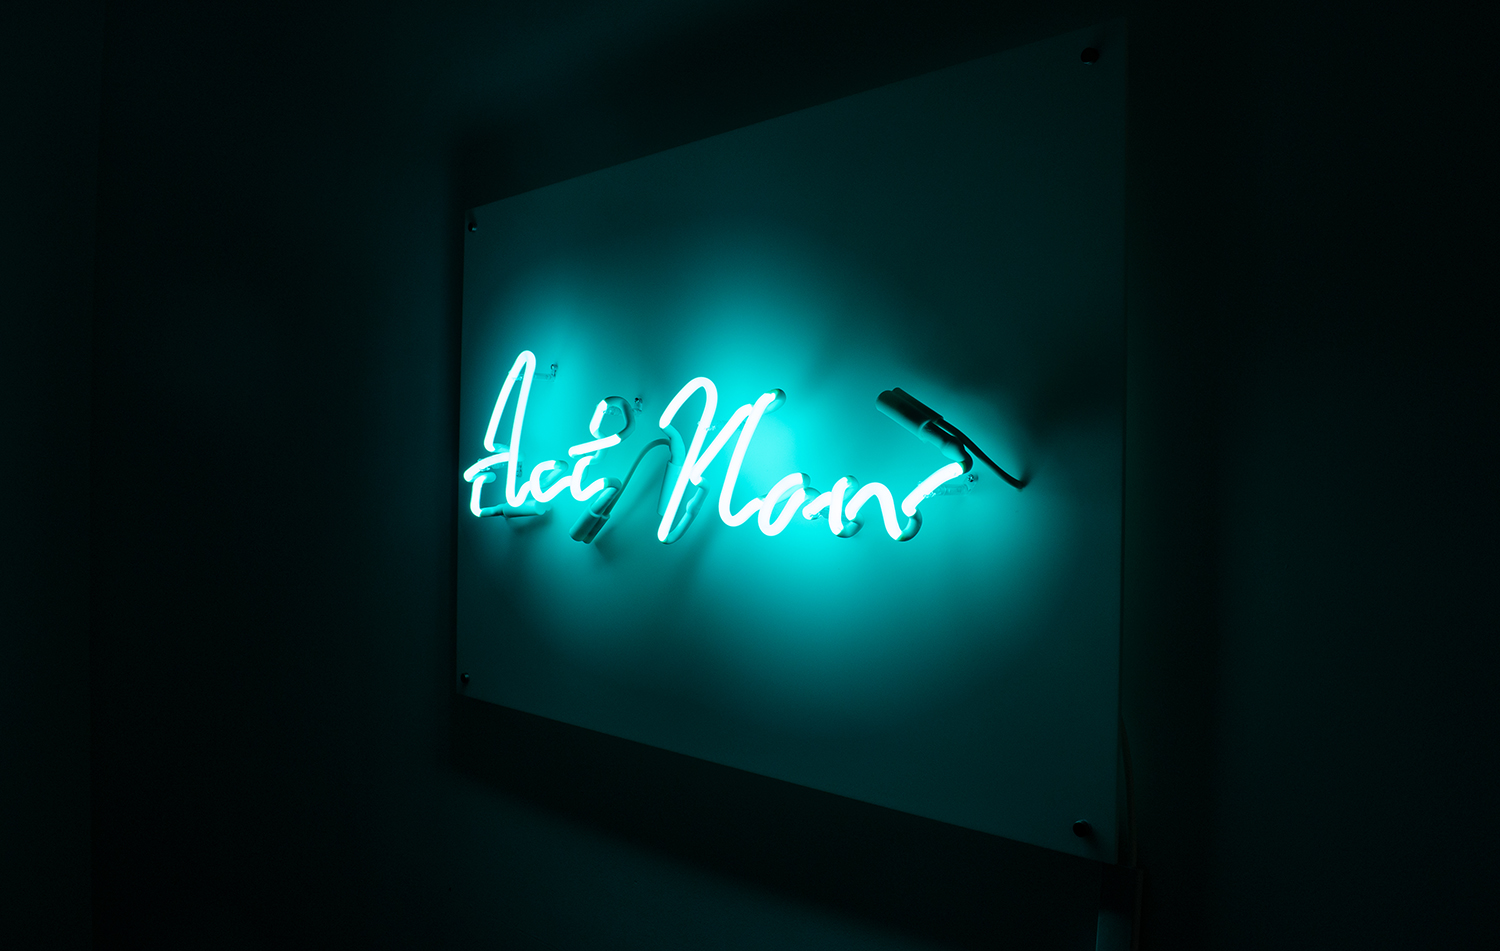 Indira-Cesarine-Act-Now-Neon-Sculpture-Edition-2-2020-5.jpg